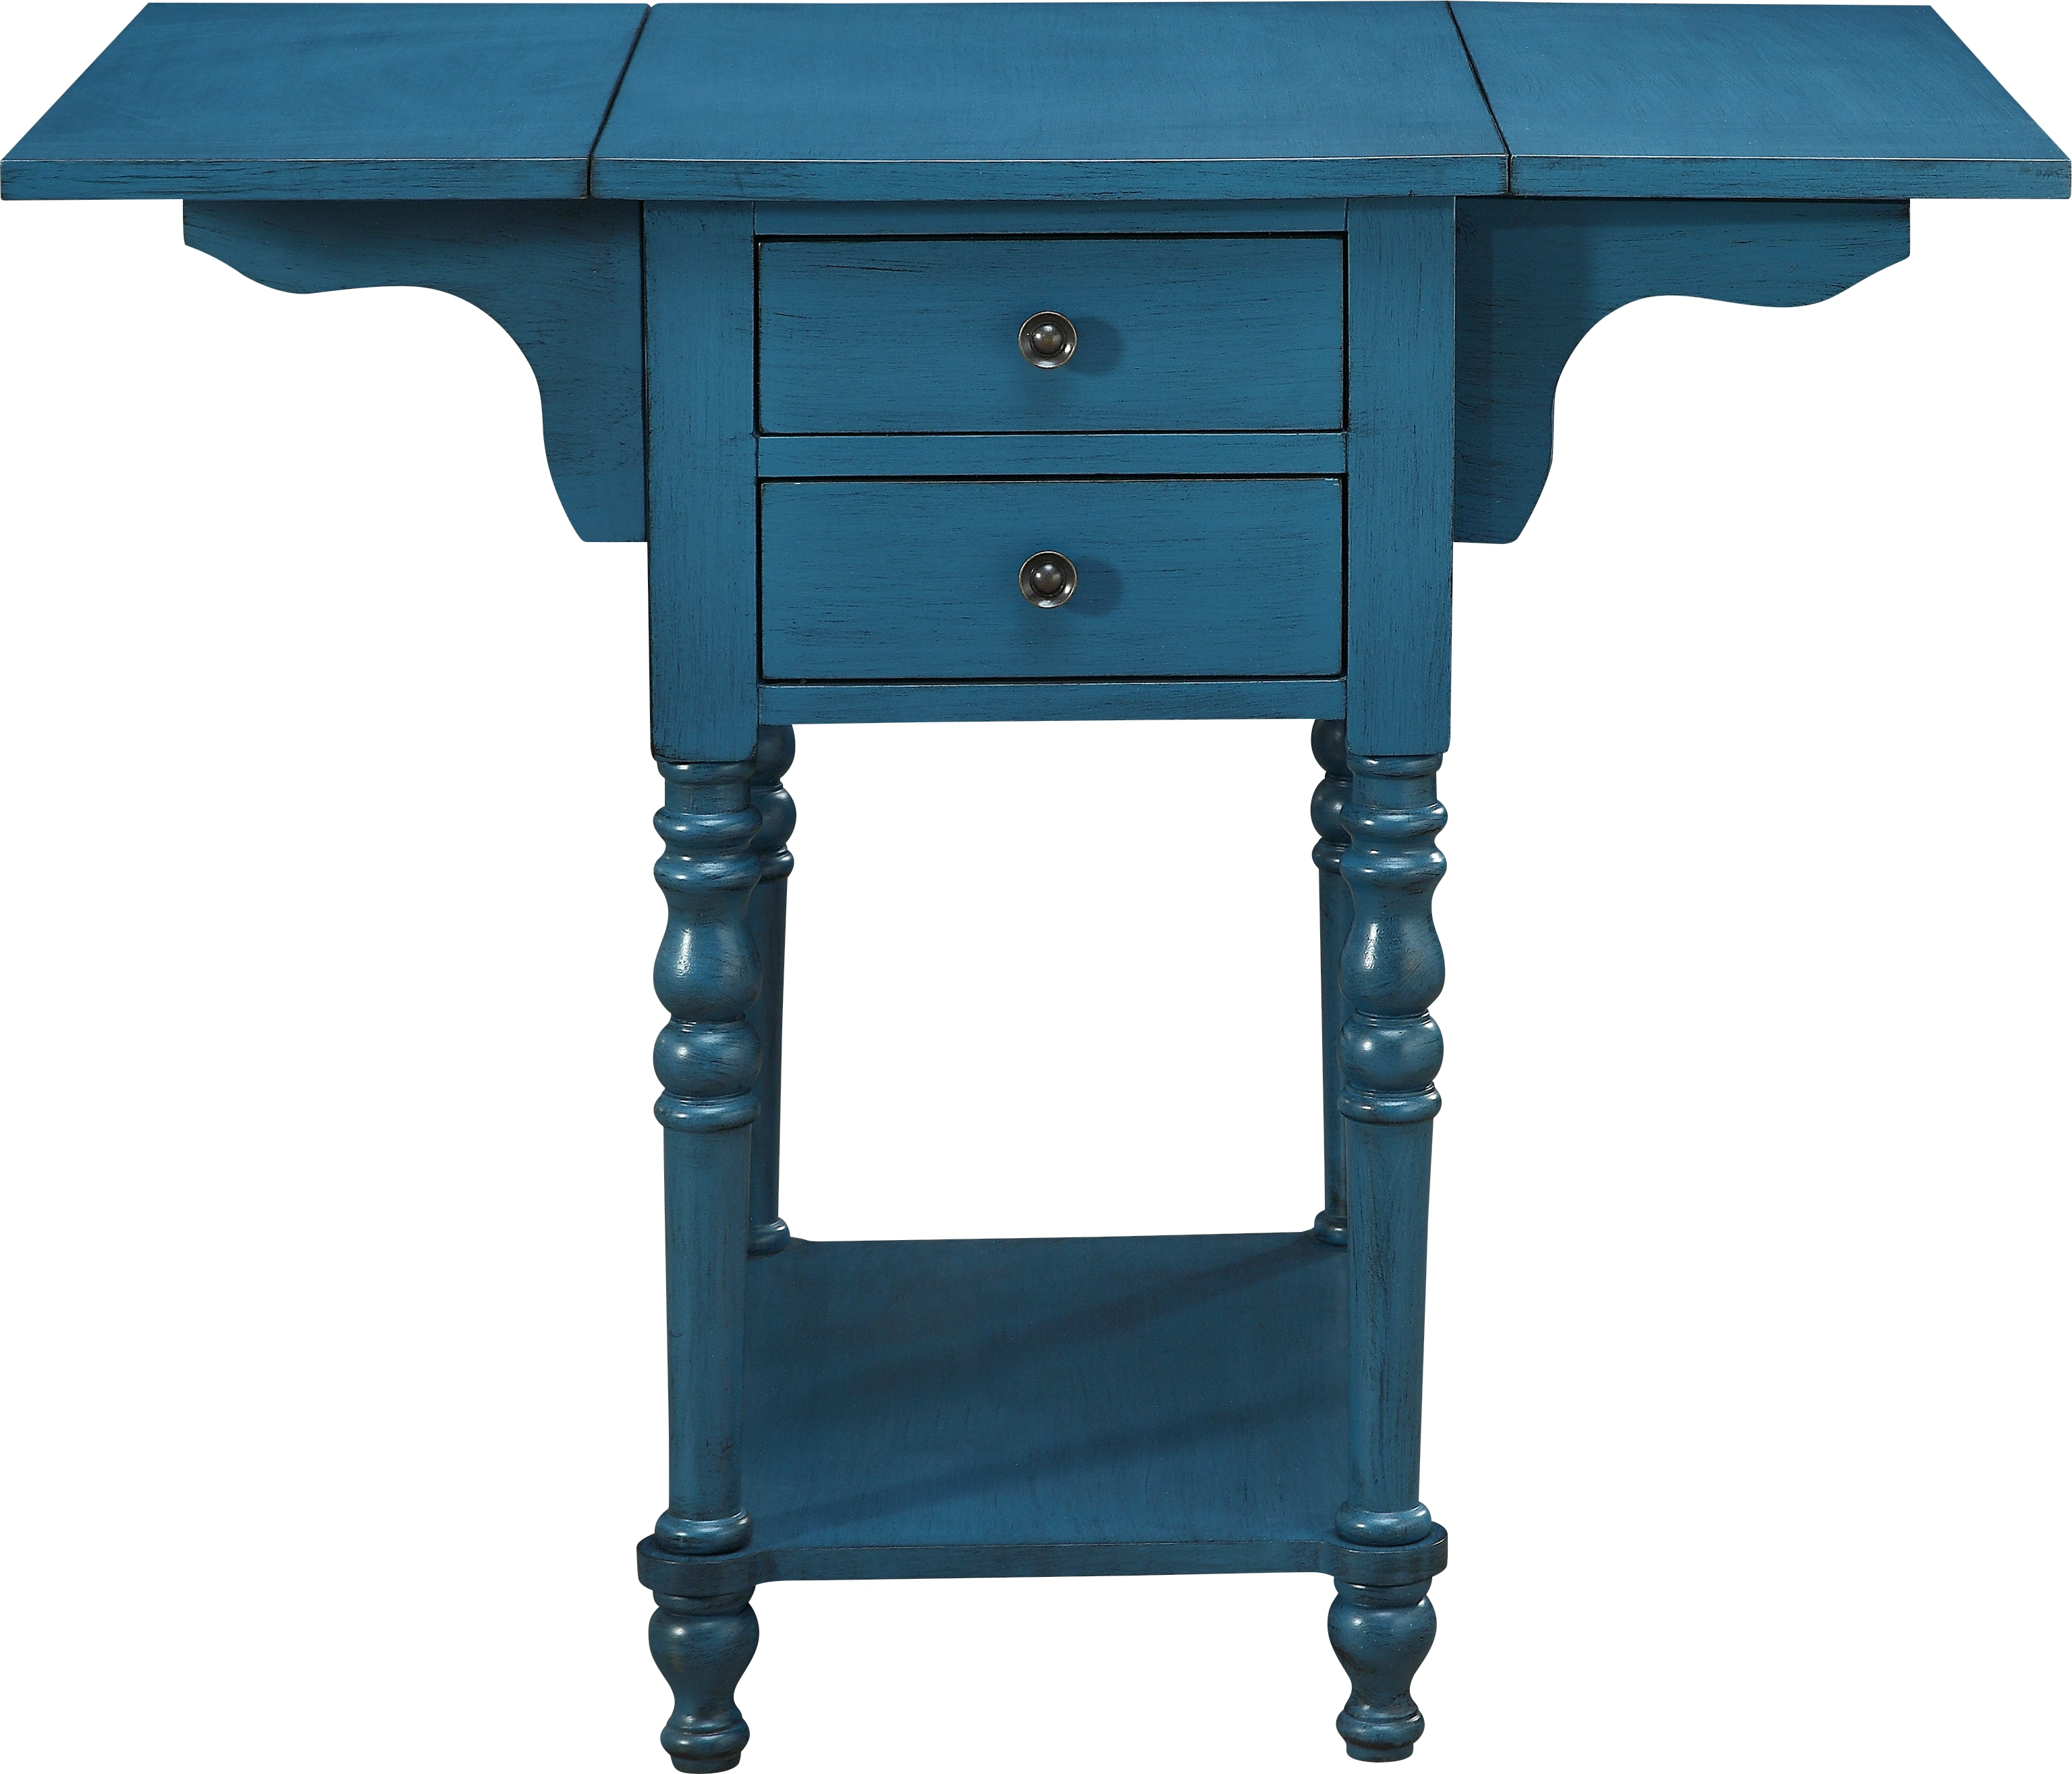 darcell blue accent table tables colors teal clear plastic mirrored console with drawers white curtains target tall stools clearance dining room chairs lounge square lucite drop